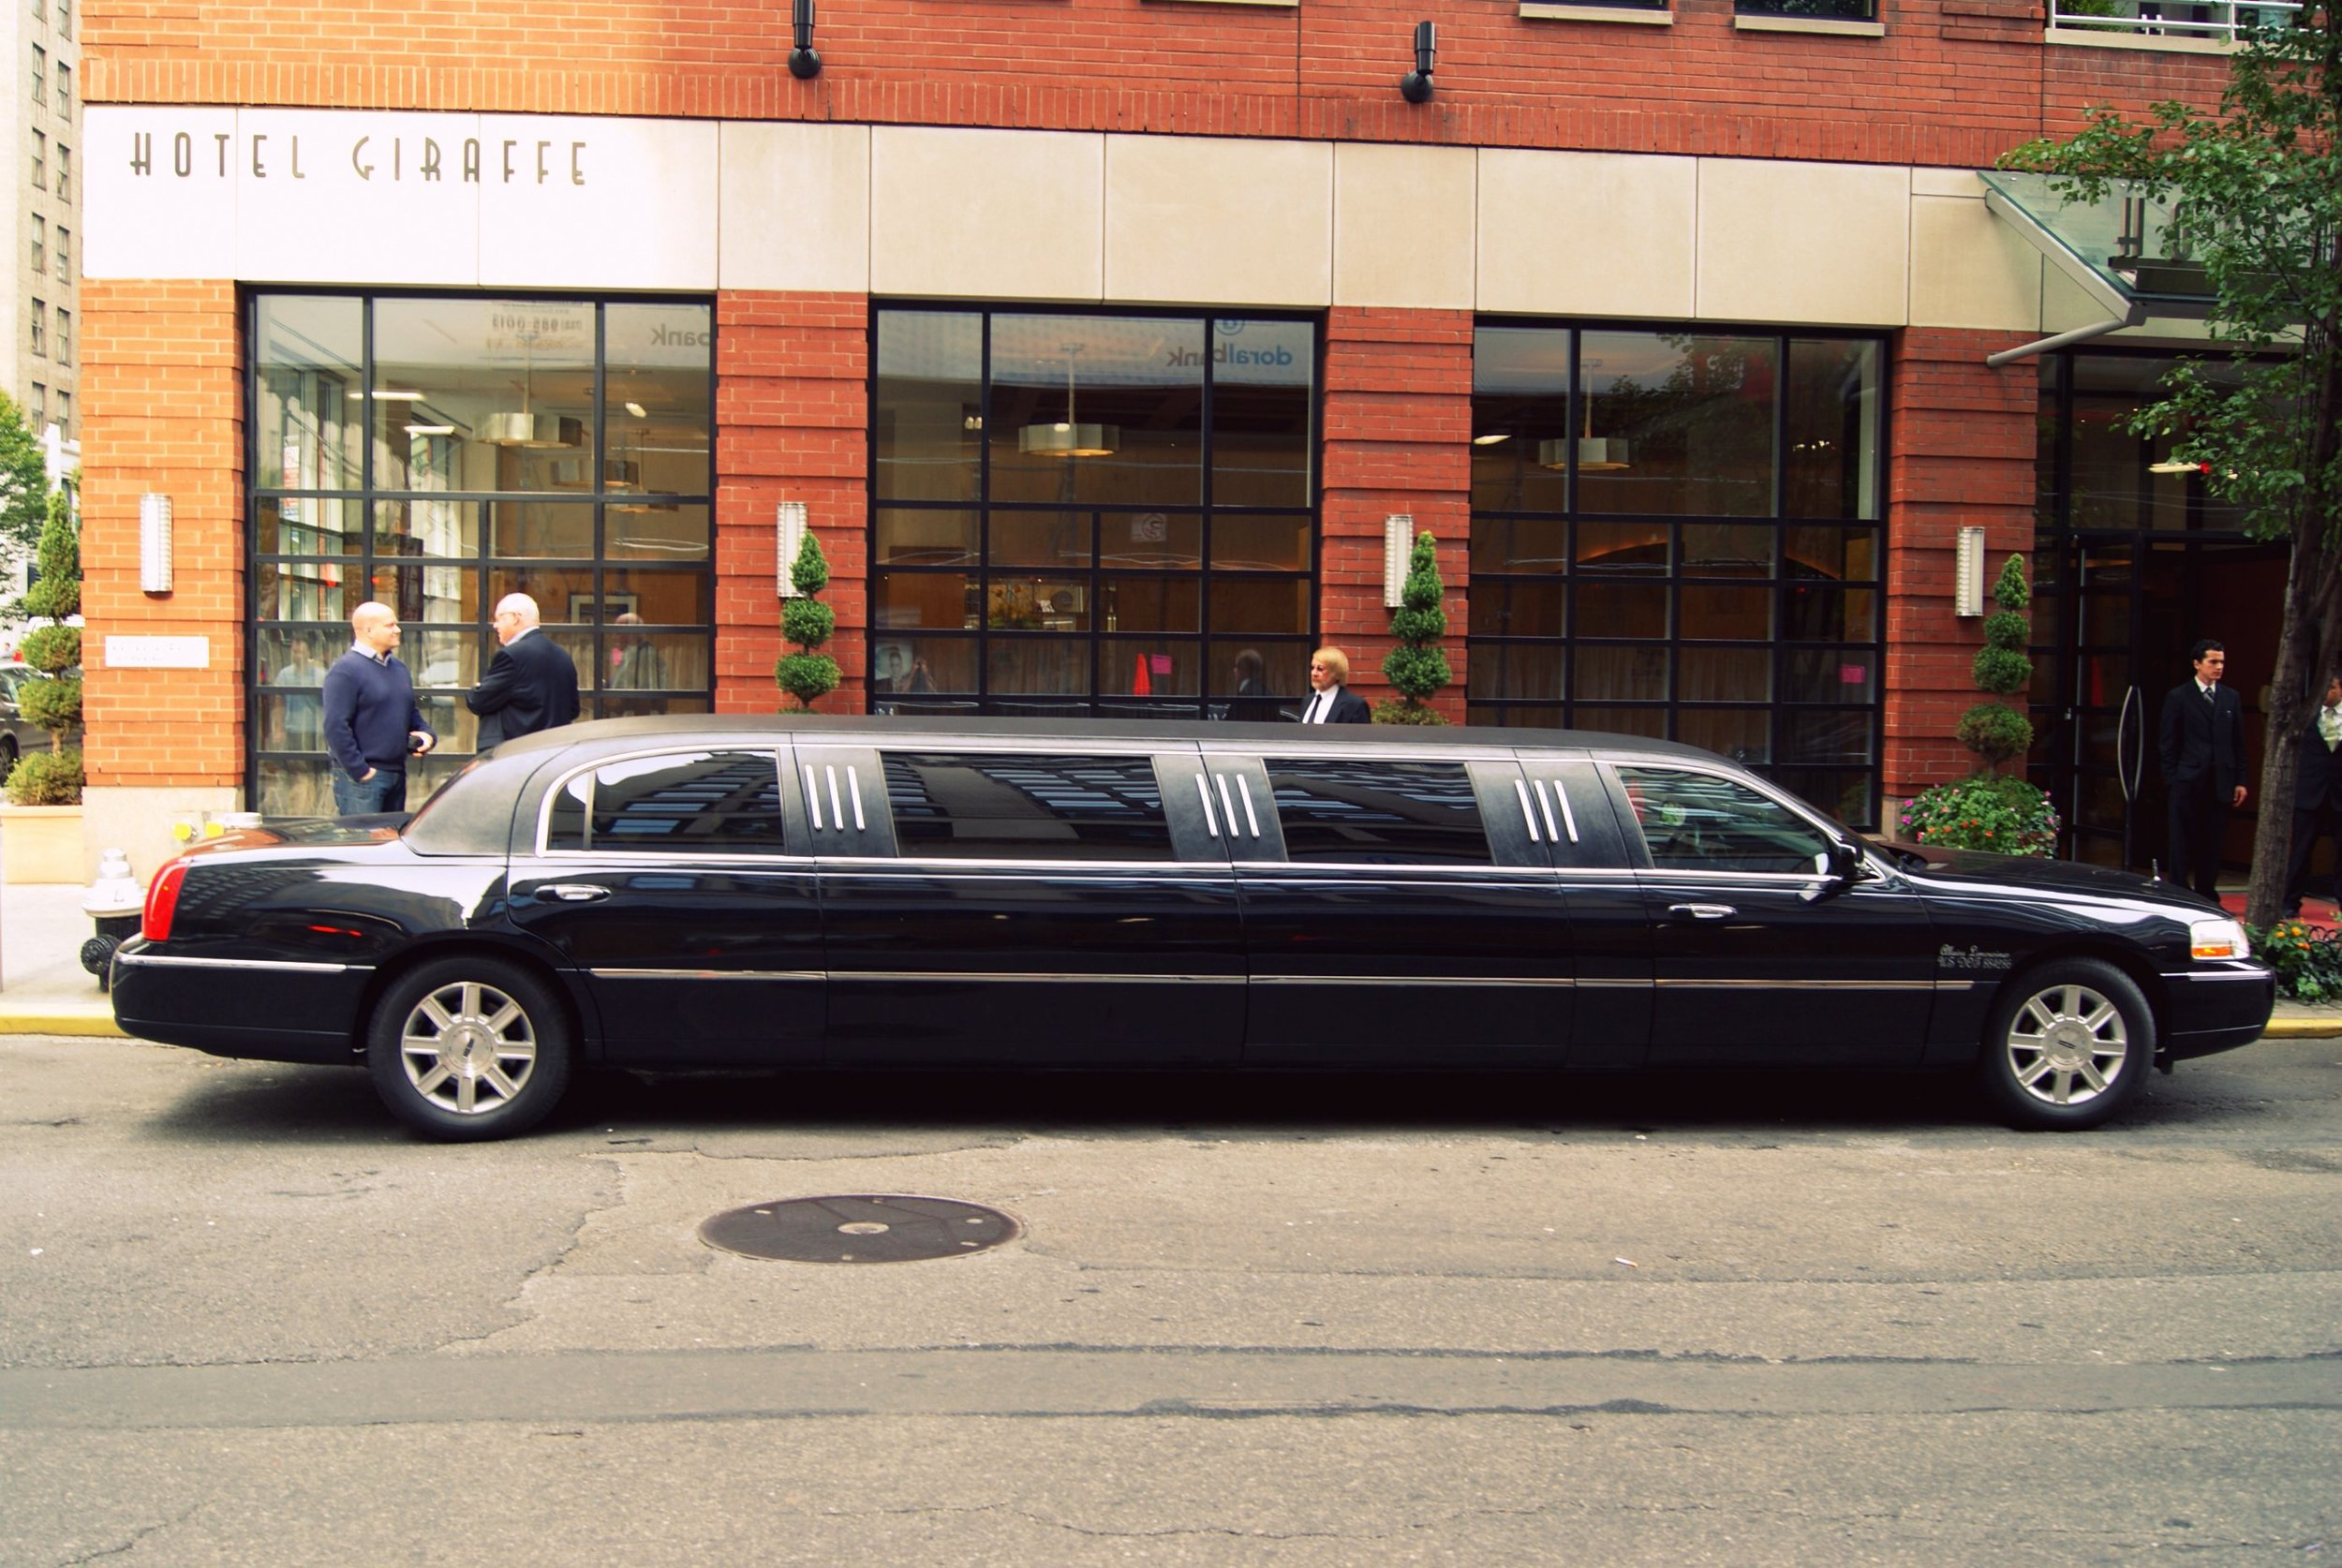 The limousine that our family friends John & Barbara had sent to our hotel. It picked us up and took us for a tour of the city before dropping us off on the Upper East Side! - october 2010